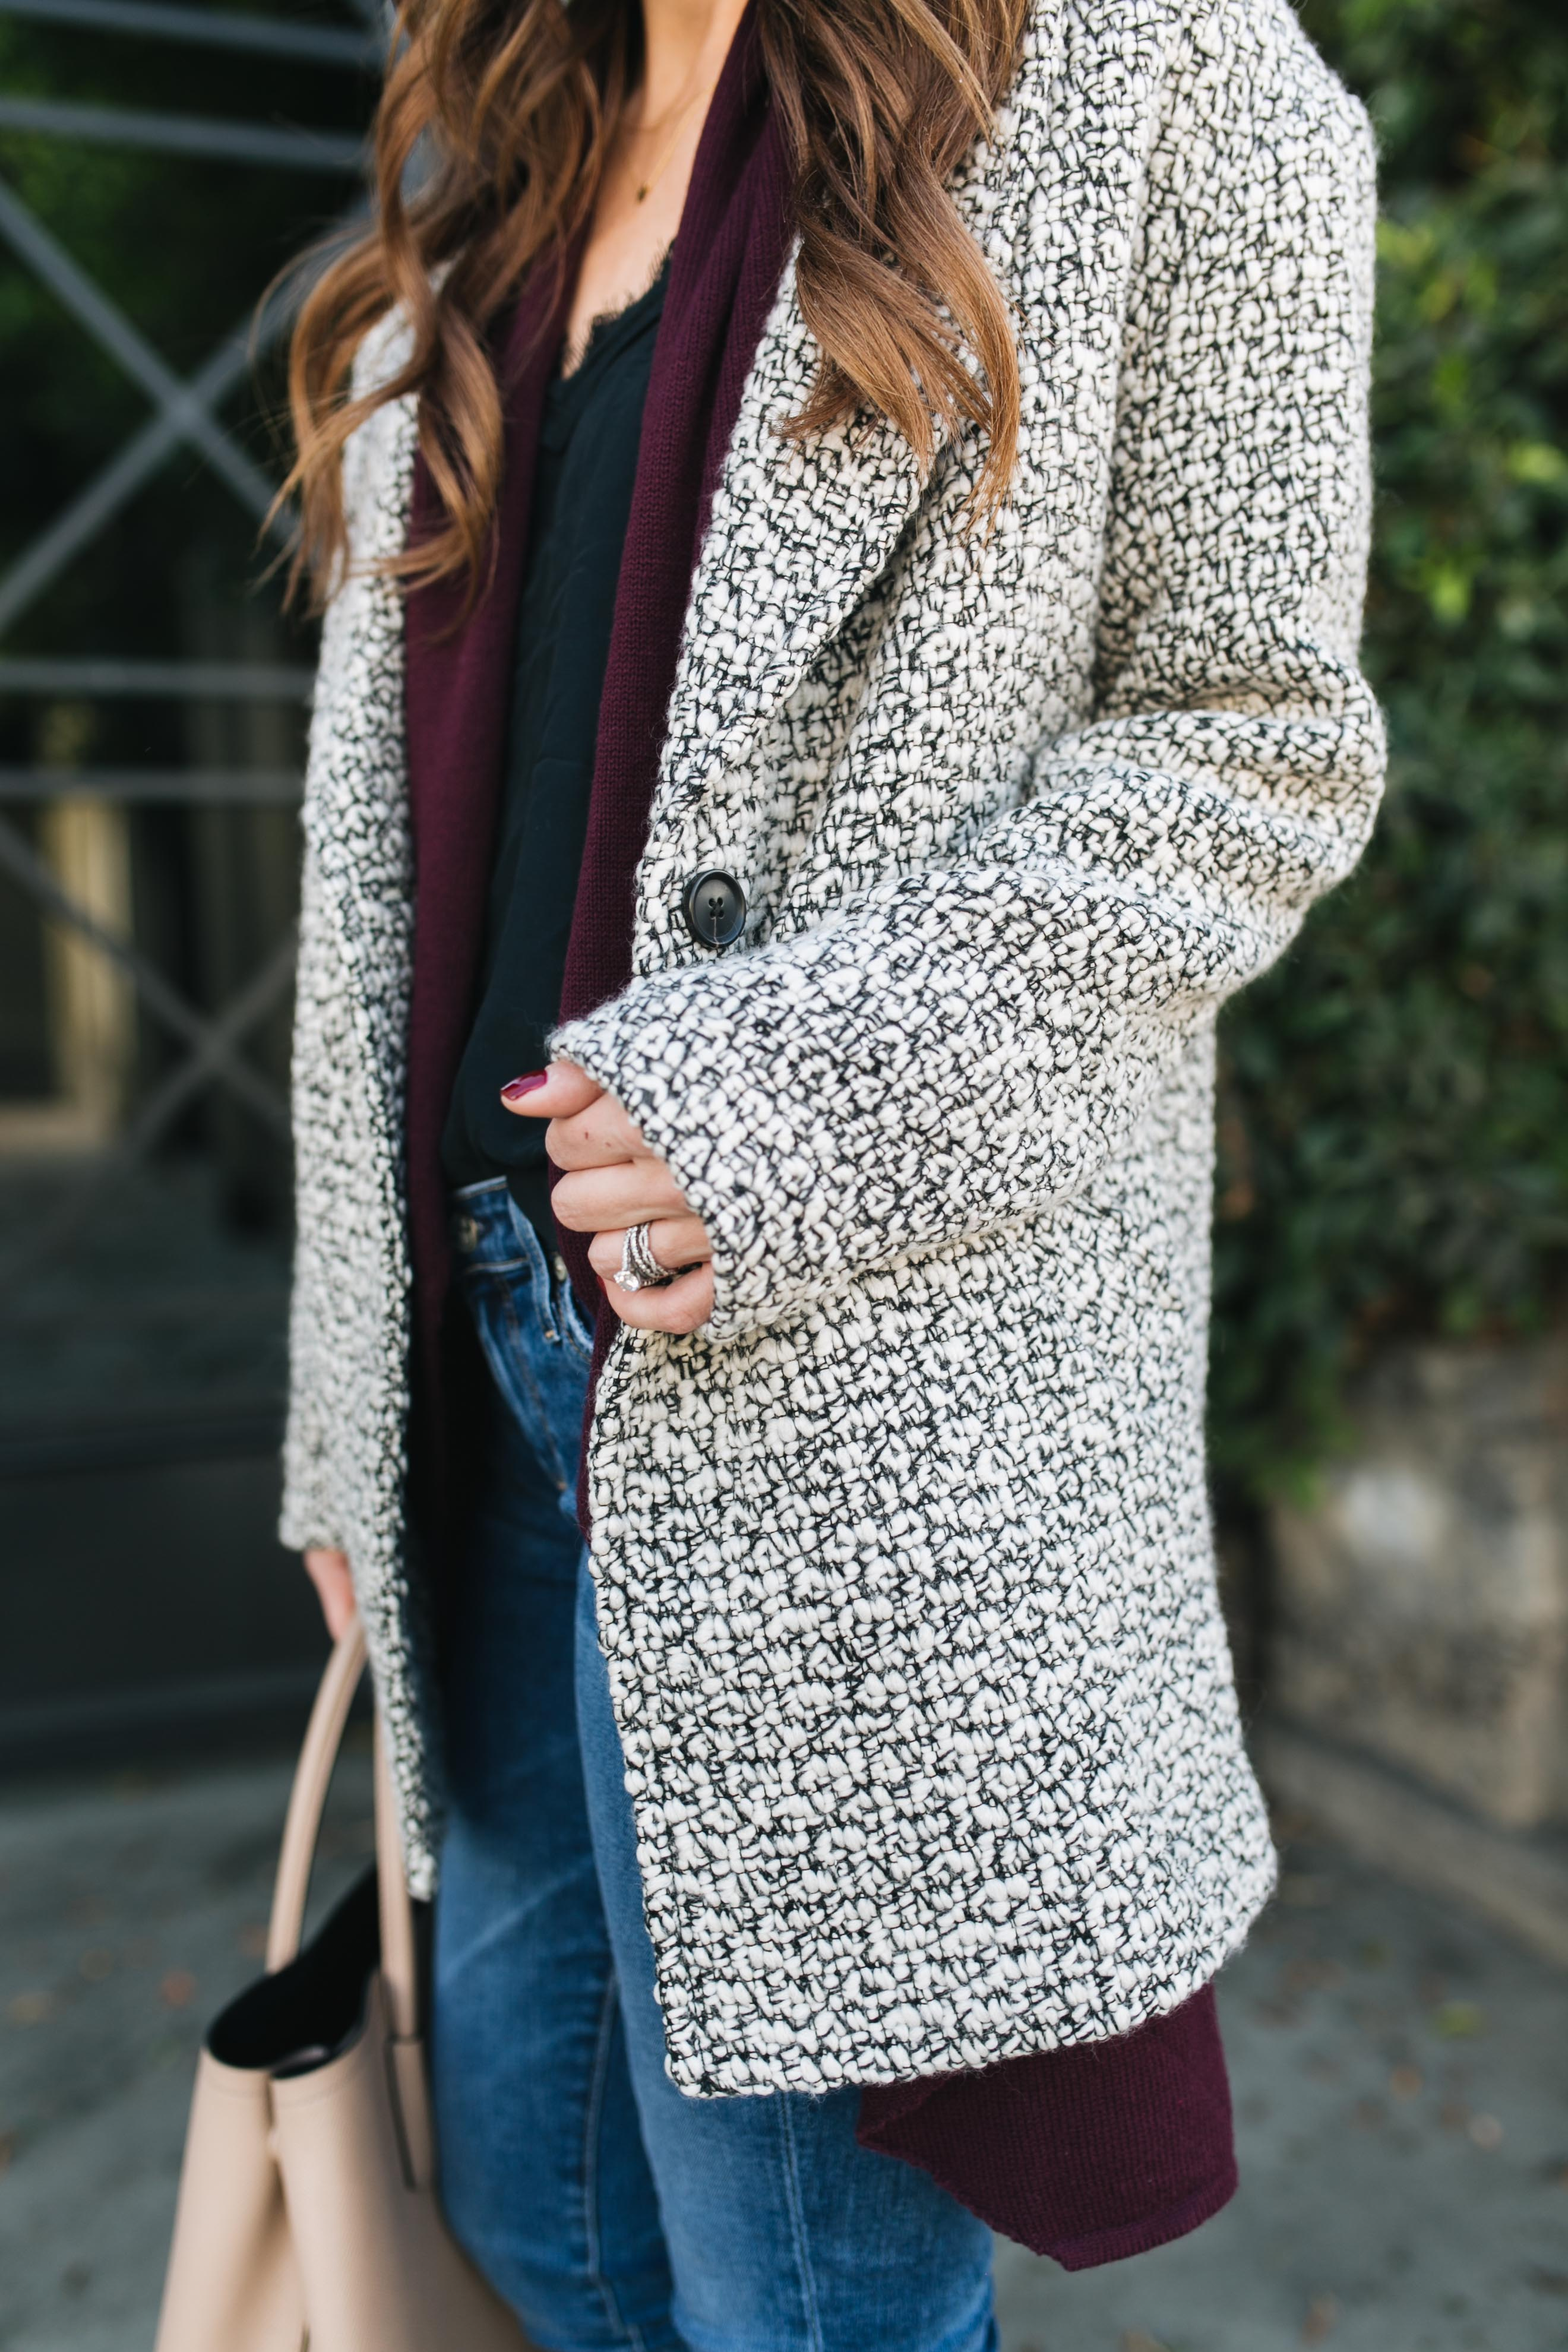 Style blogger Daryl-Ann Denner rounds up top 10 coats under $200 and styles a black and white peacoat layered with a maroon cardigan